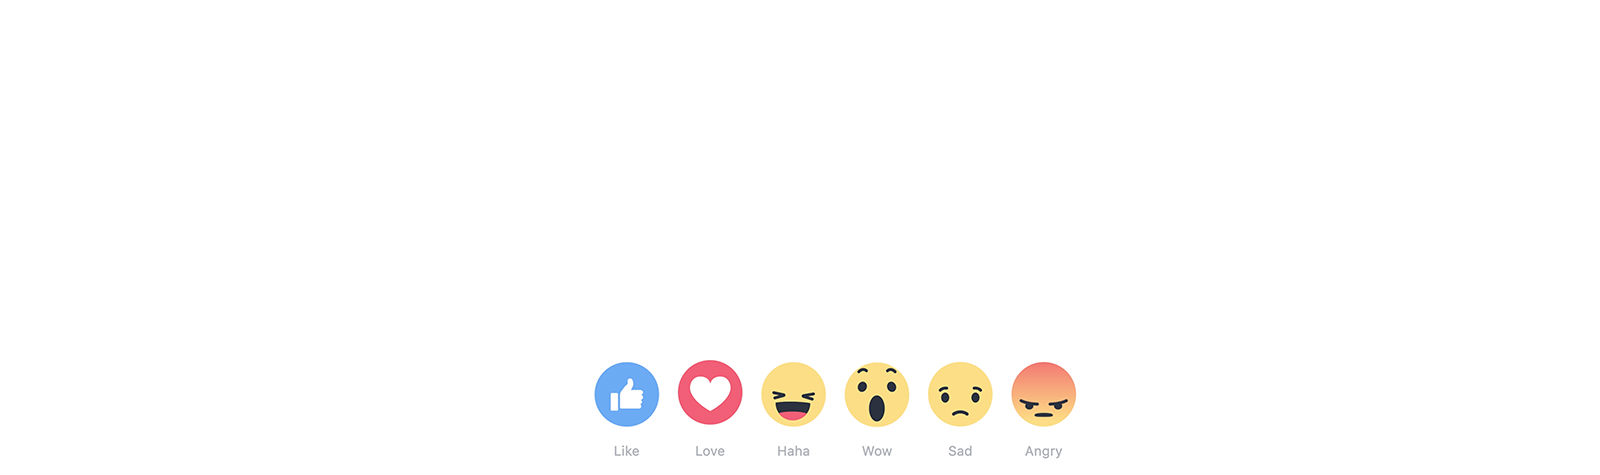 Wow! Our Facebook Reaction